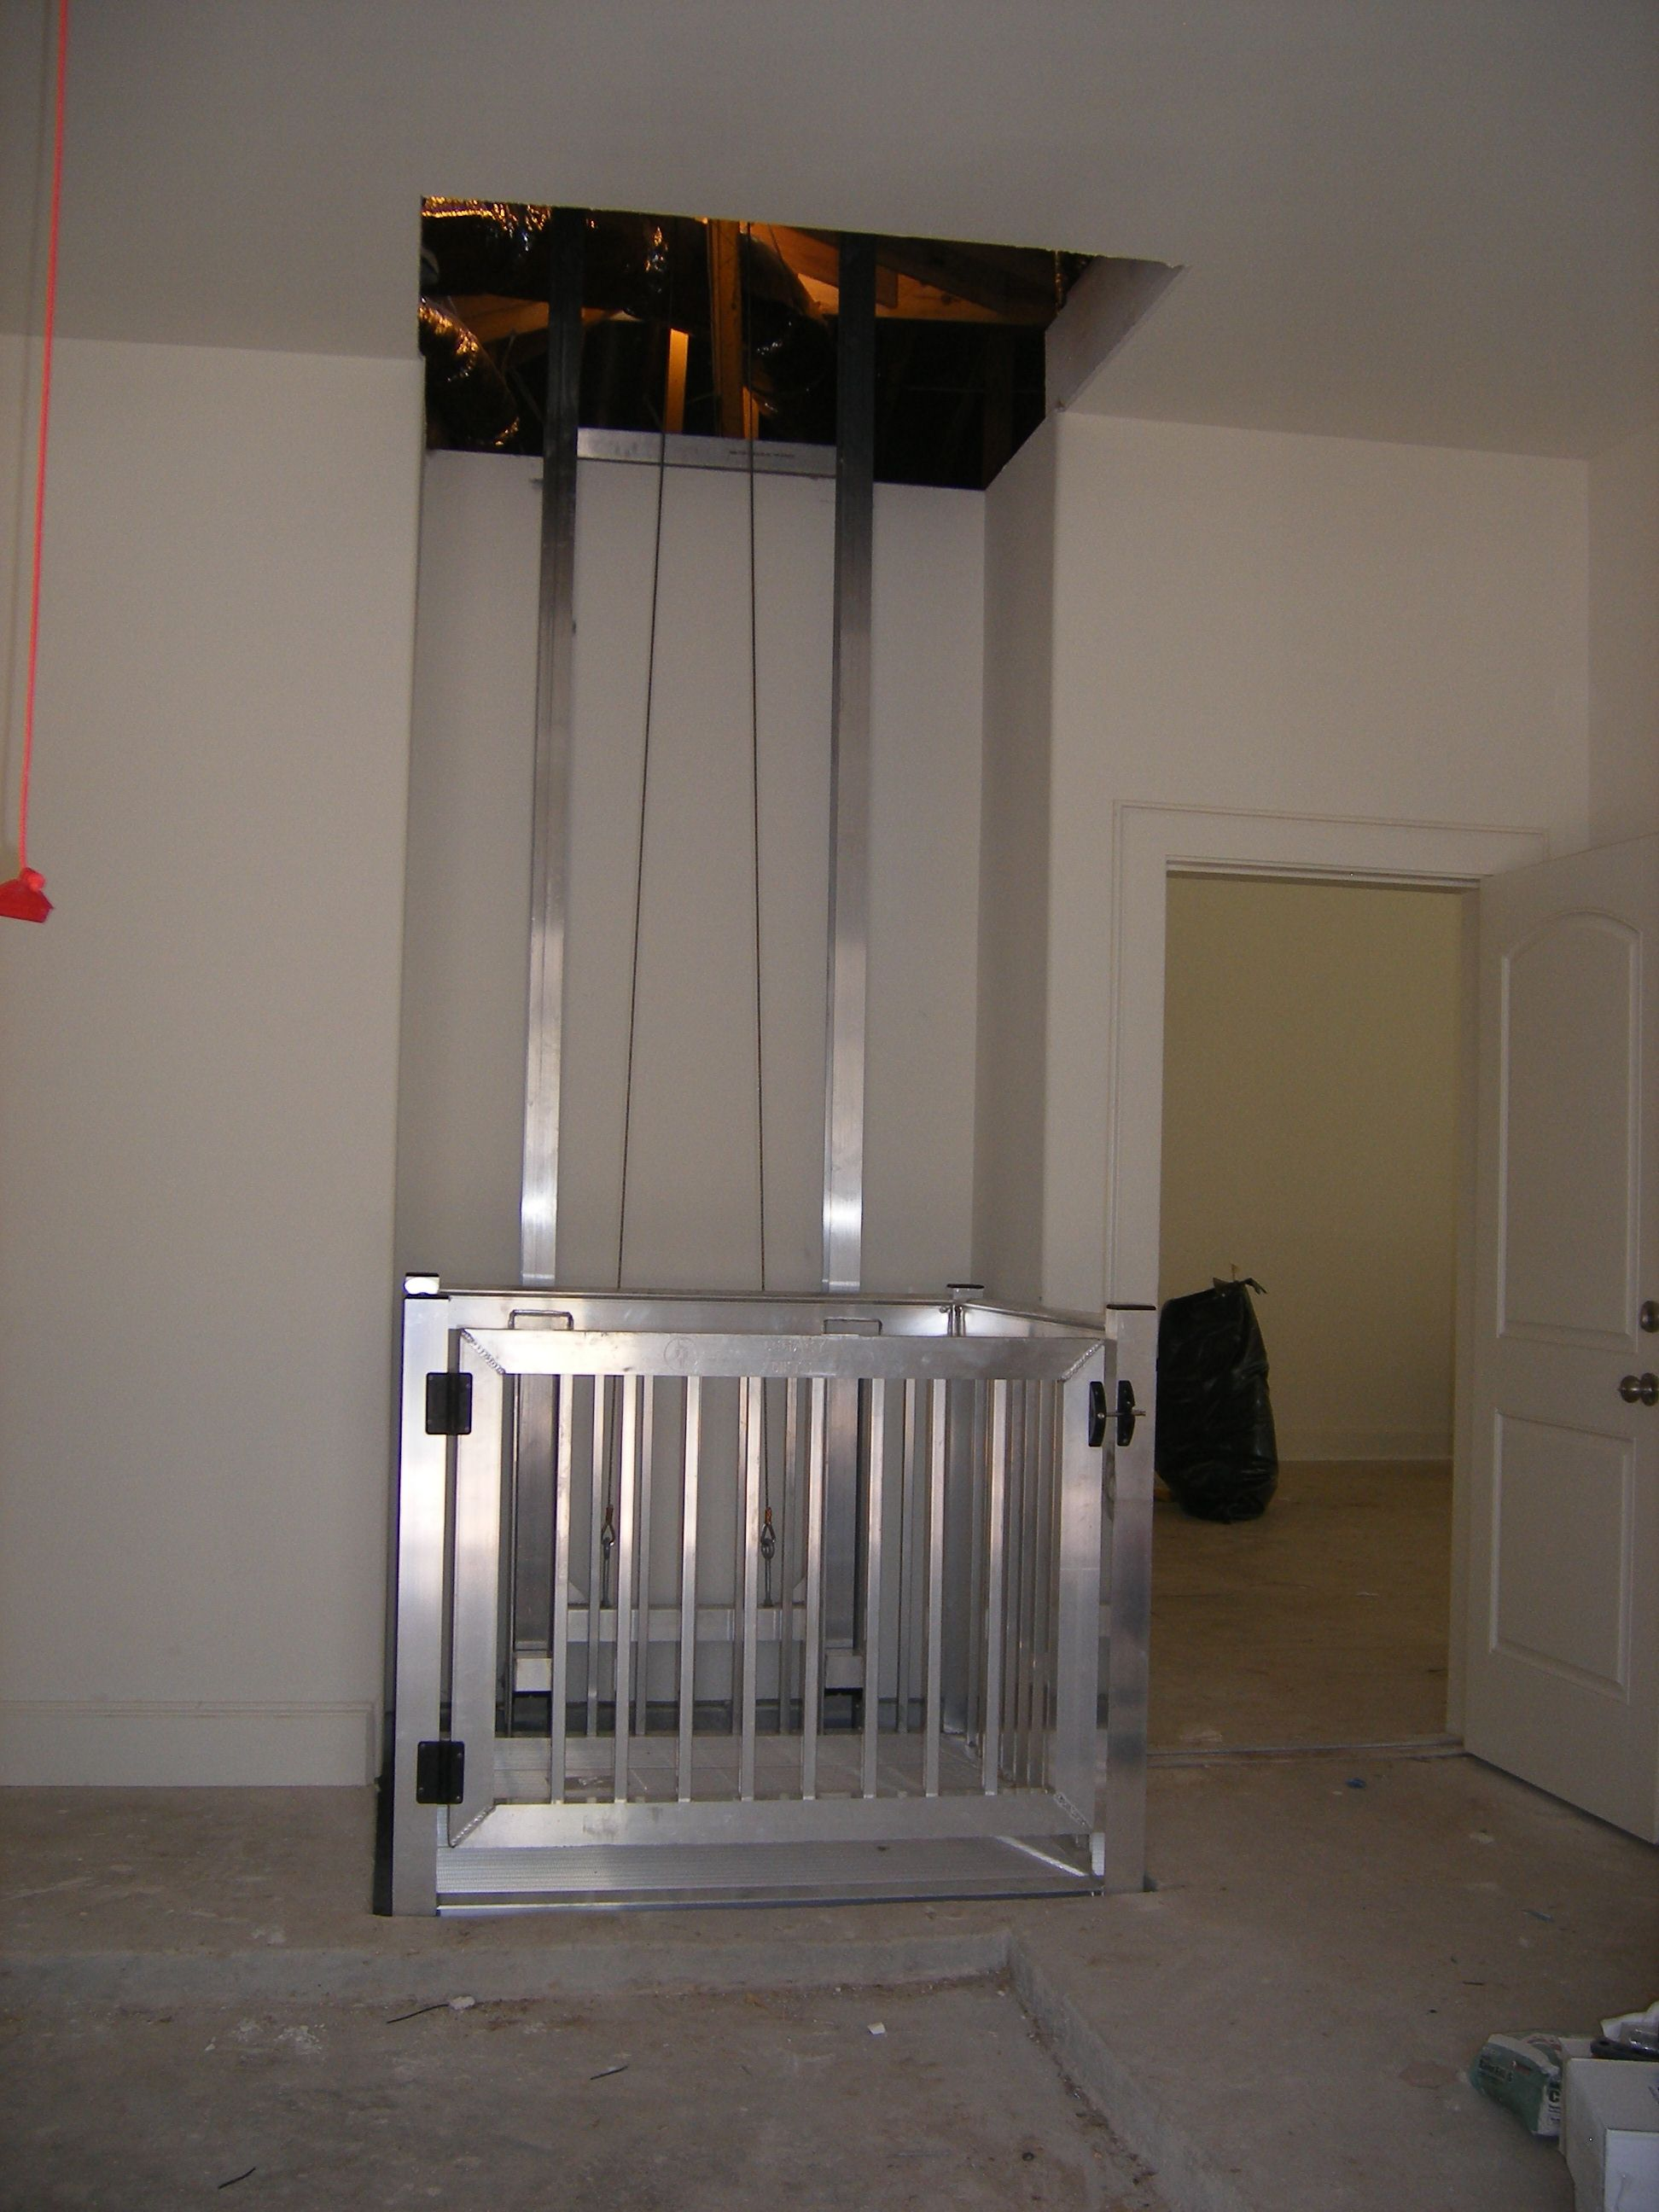 Garage to attic legacy lifts 800 597 5438 cargo lifts for Diy home elevator plans